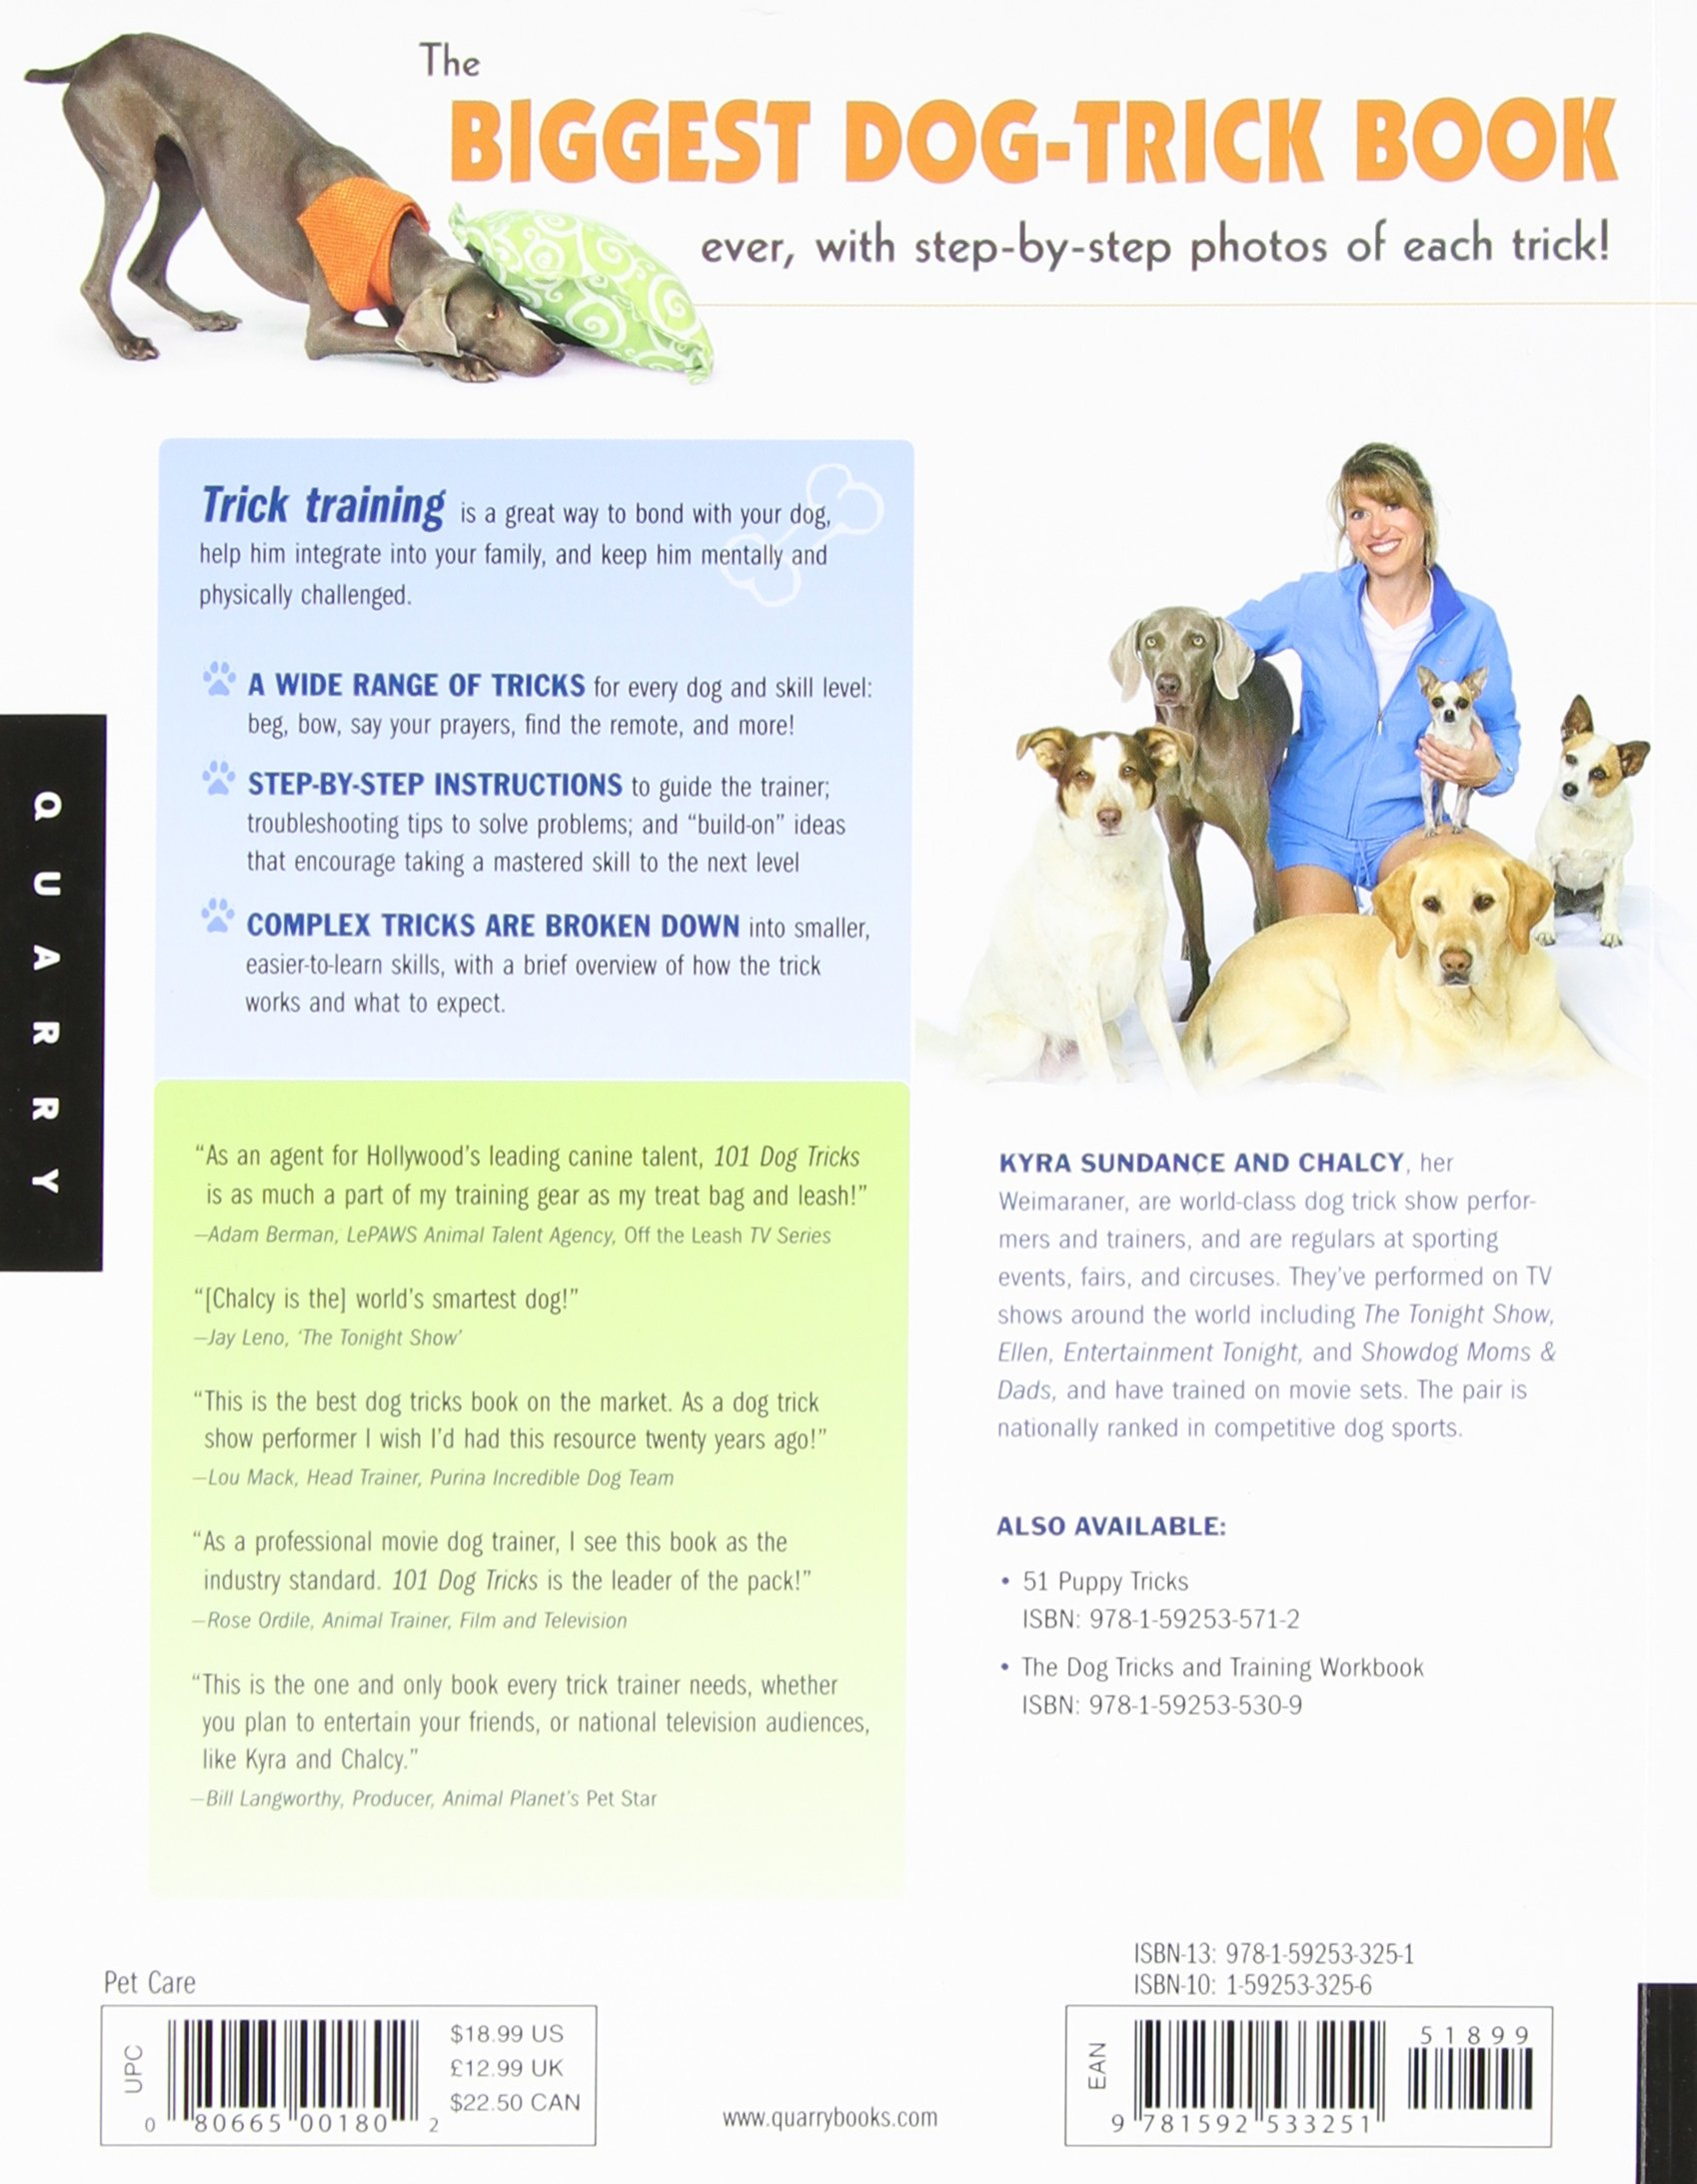 101 Dog Tricks: Step by Step Activities to Engage, Challenge, and Bond with  Your Dog: Amazon.co.uk: Kyra Sundance: 9781592533251: Books